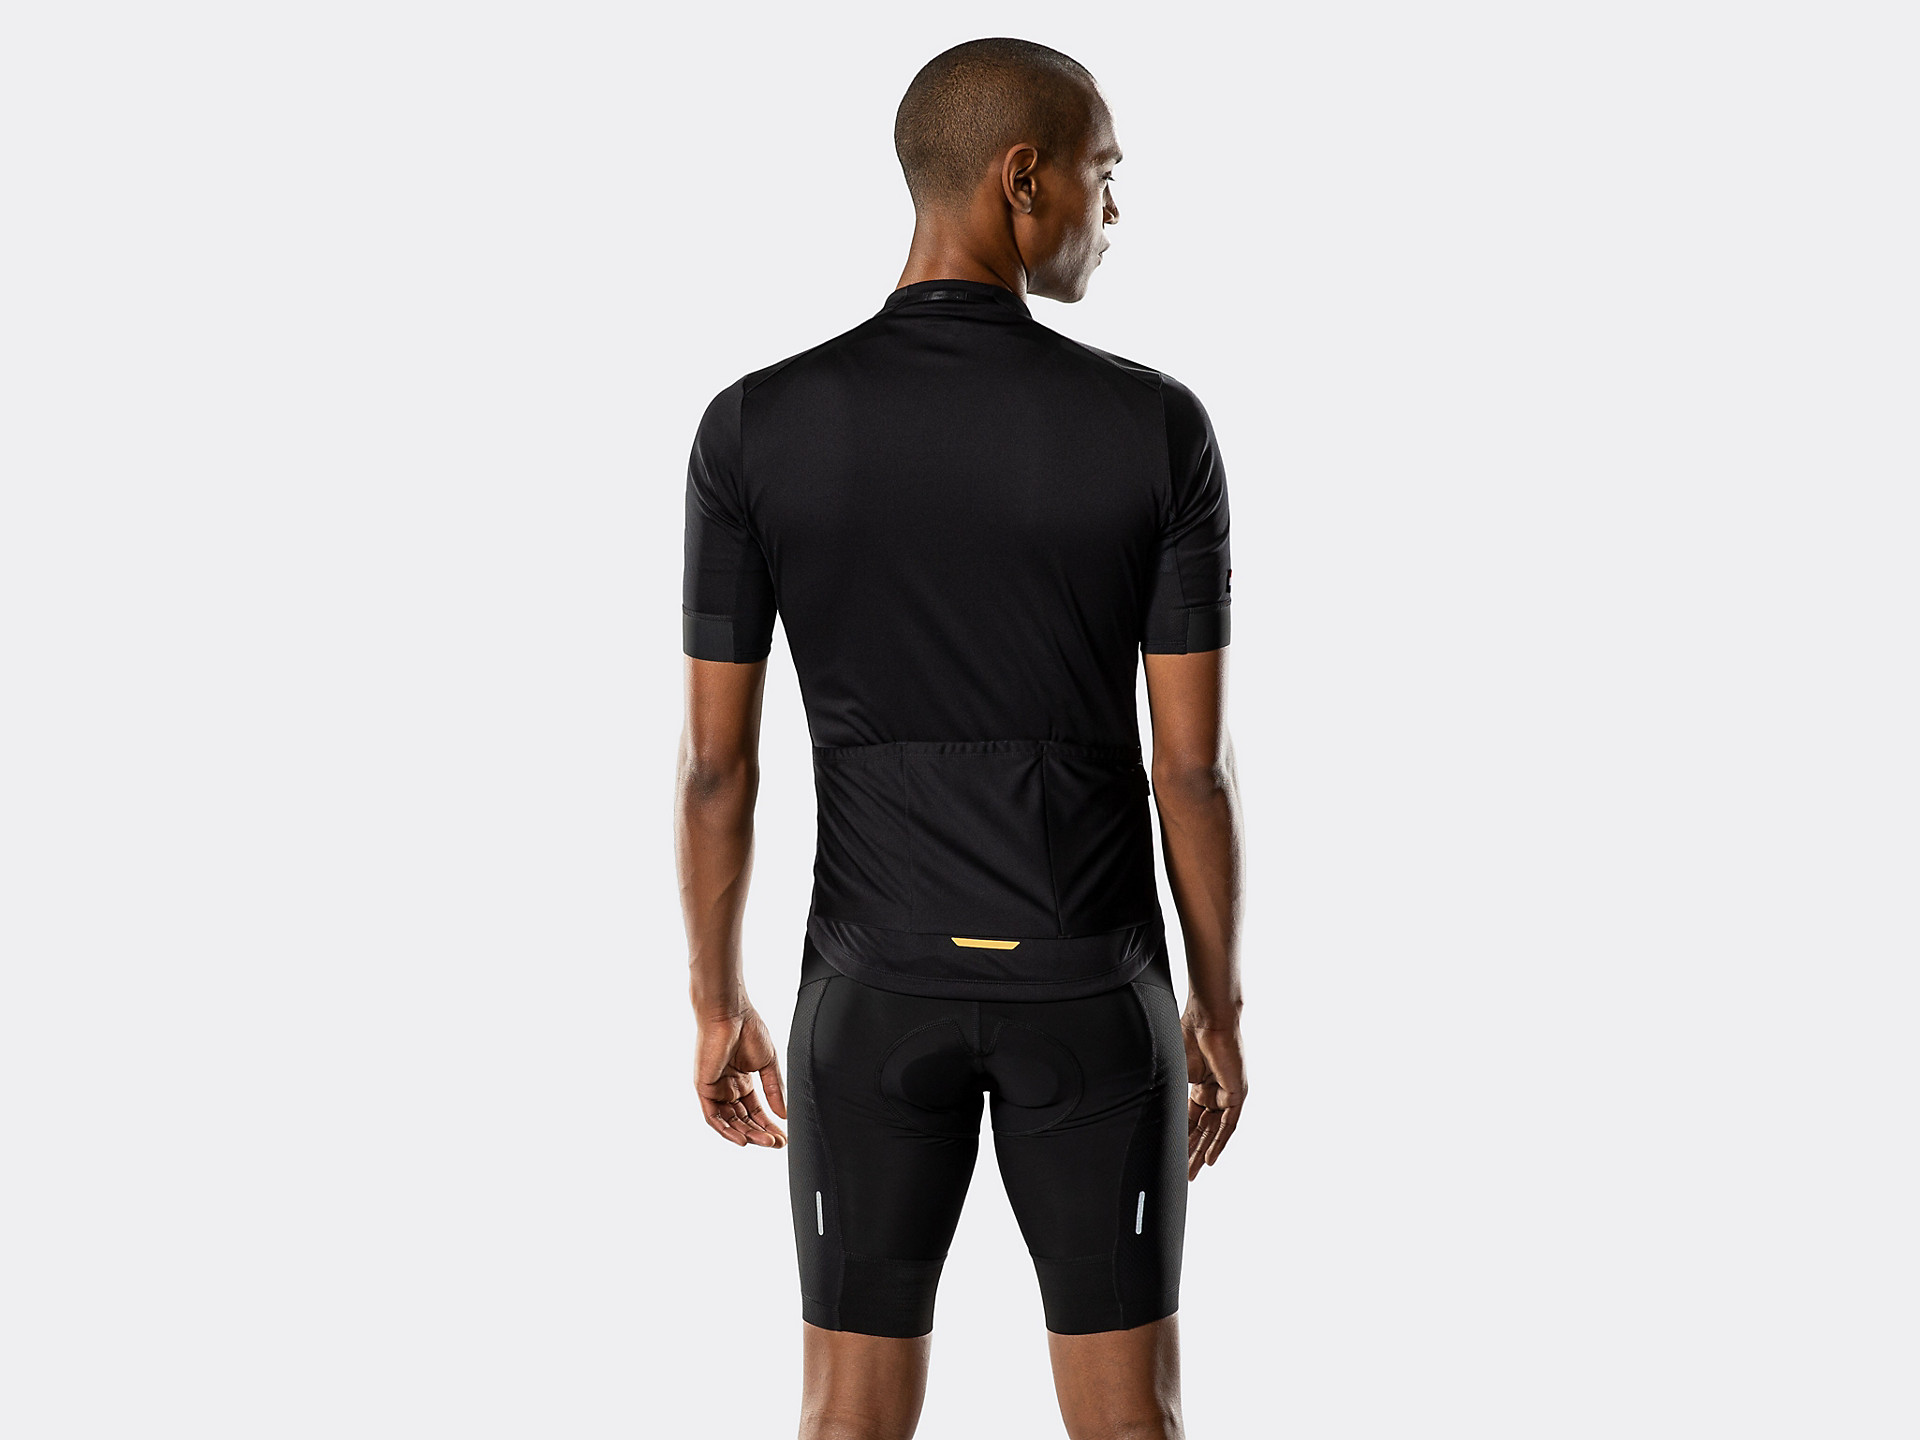 Bontrager Velocis Cycling Jersey. Overview  Features  Tech specs  Sizing    fit  Reviews  FAQs  Buy. Prev Next 6ce81a435